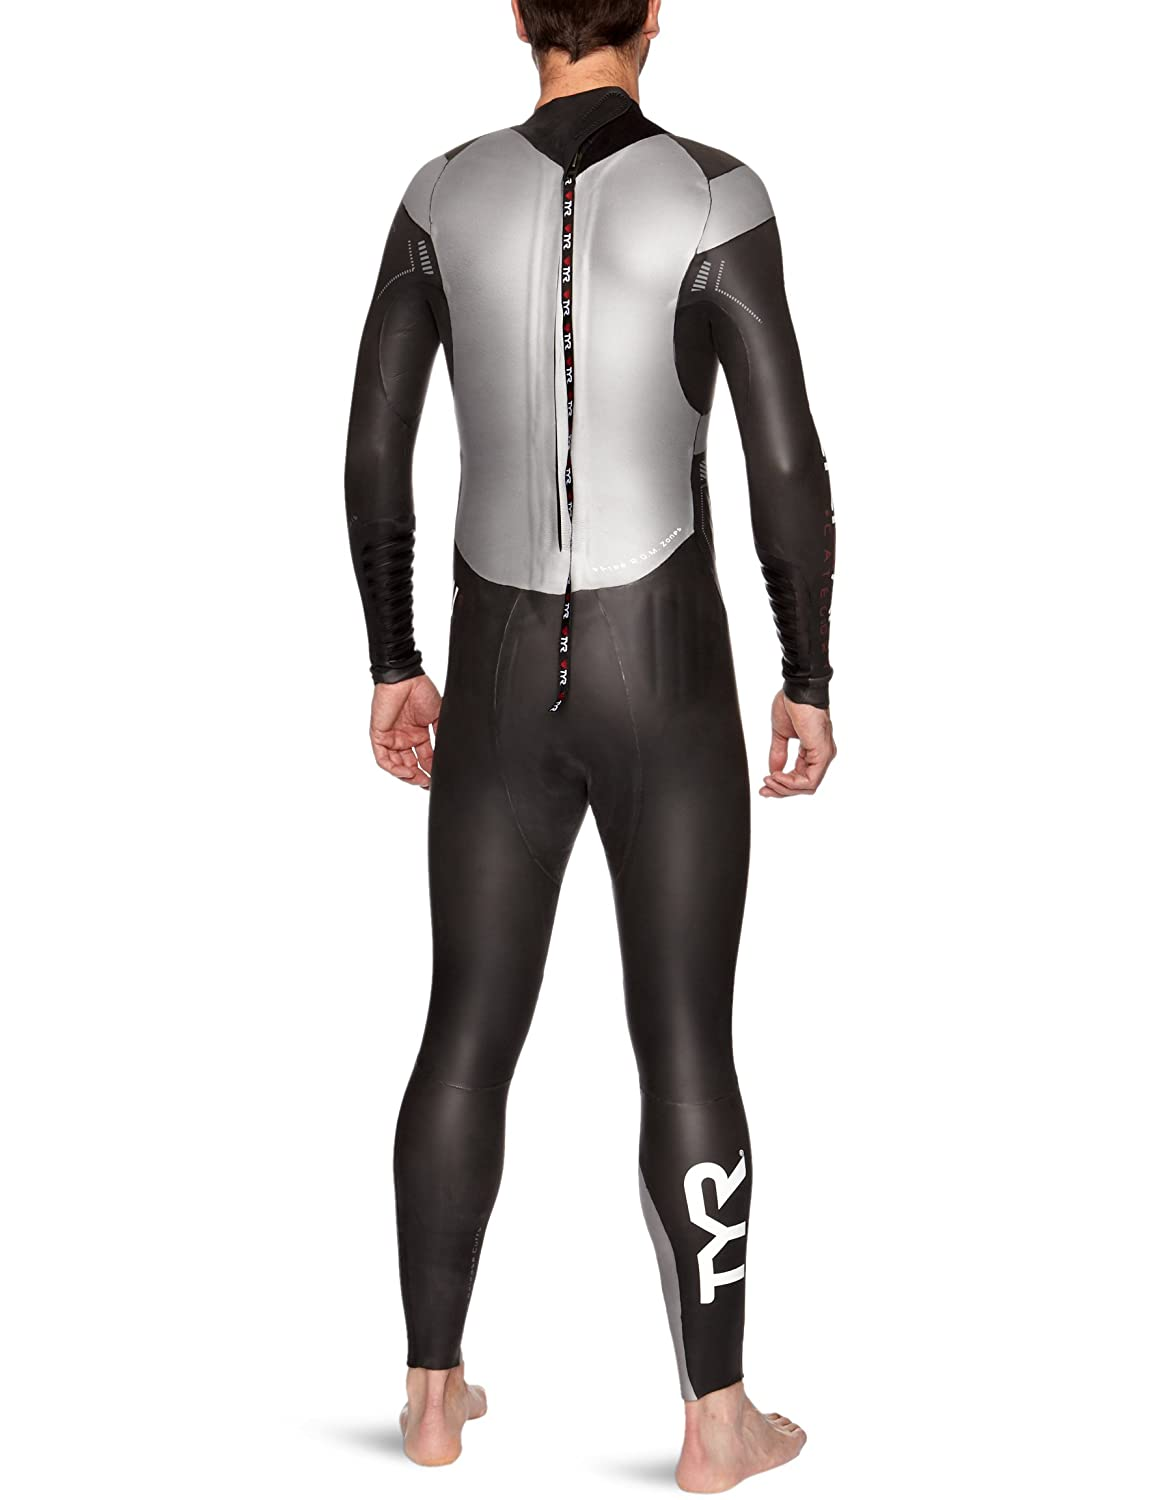 38a3b85bb6d40 Amazon.com   TYR Sport Men s Category 3 Hurricane Wetsuit (Large)   Triathlon  Wetsuit   Sports   Outdoors